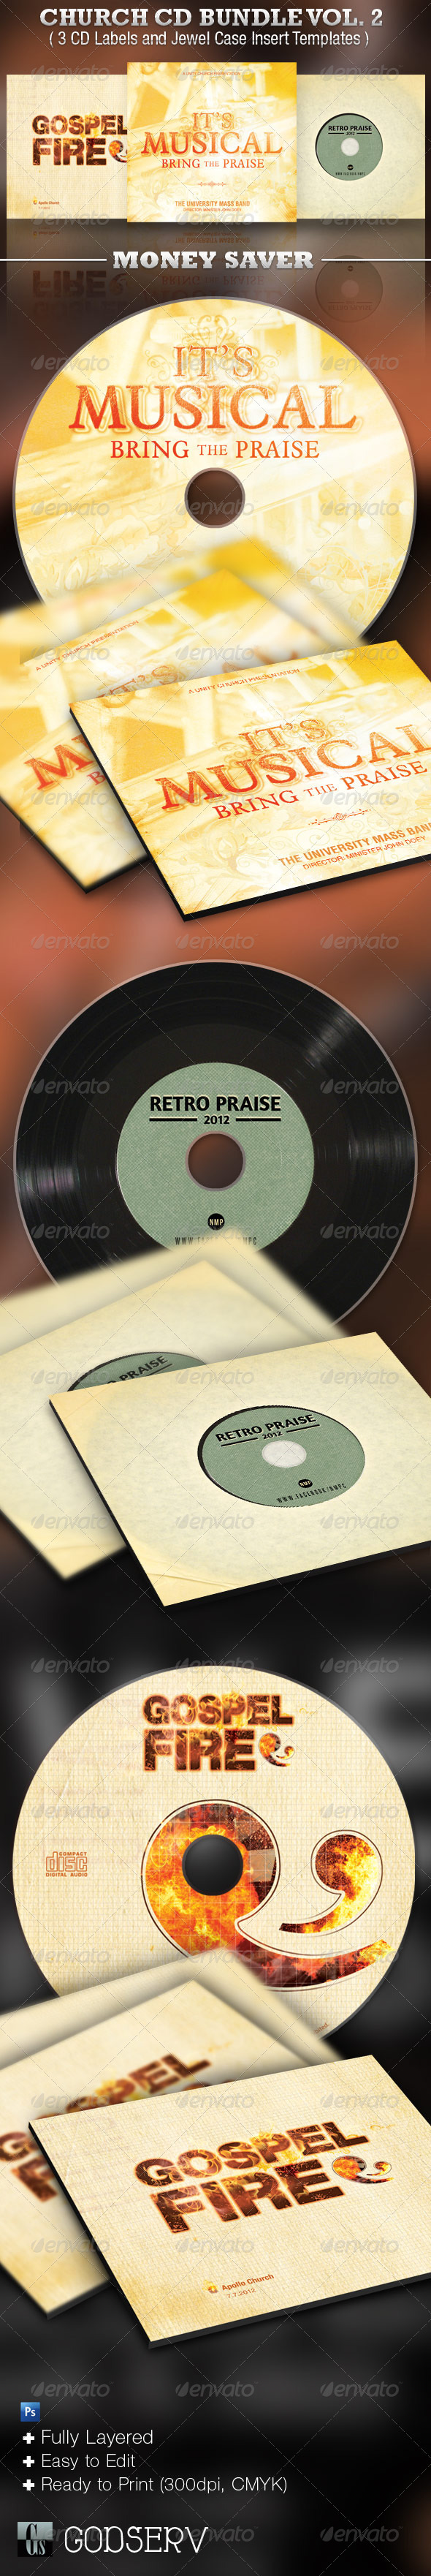 Church CD Template Bundle Vol. 2 - CD &amp; DVD artwork Print Templates